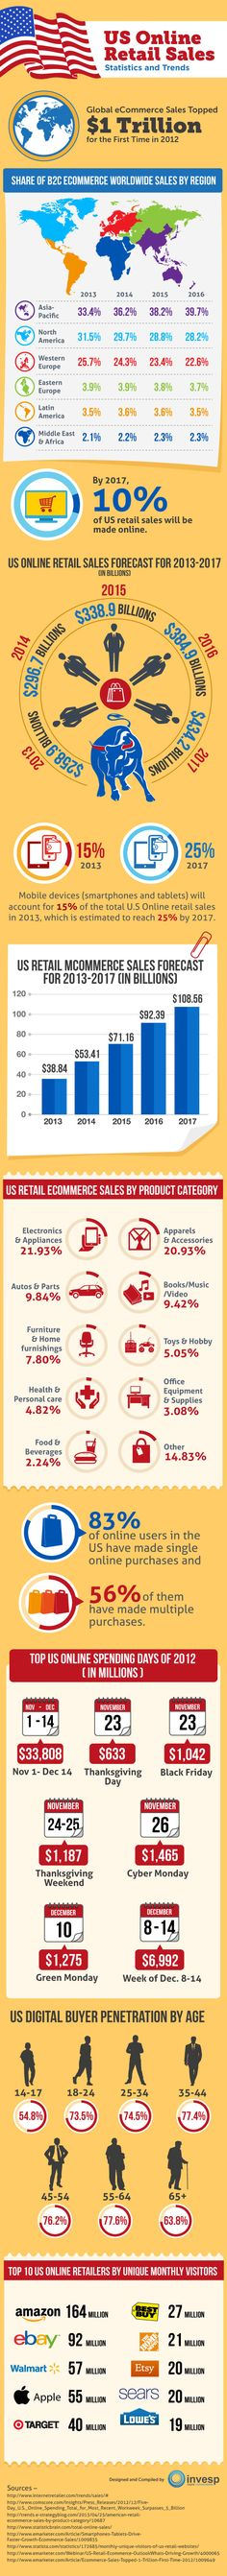 US Online Retail Sales - Statistics and Trends @ Pinfographics